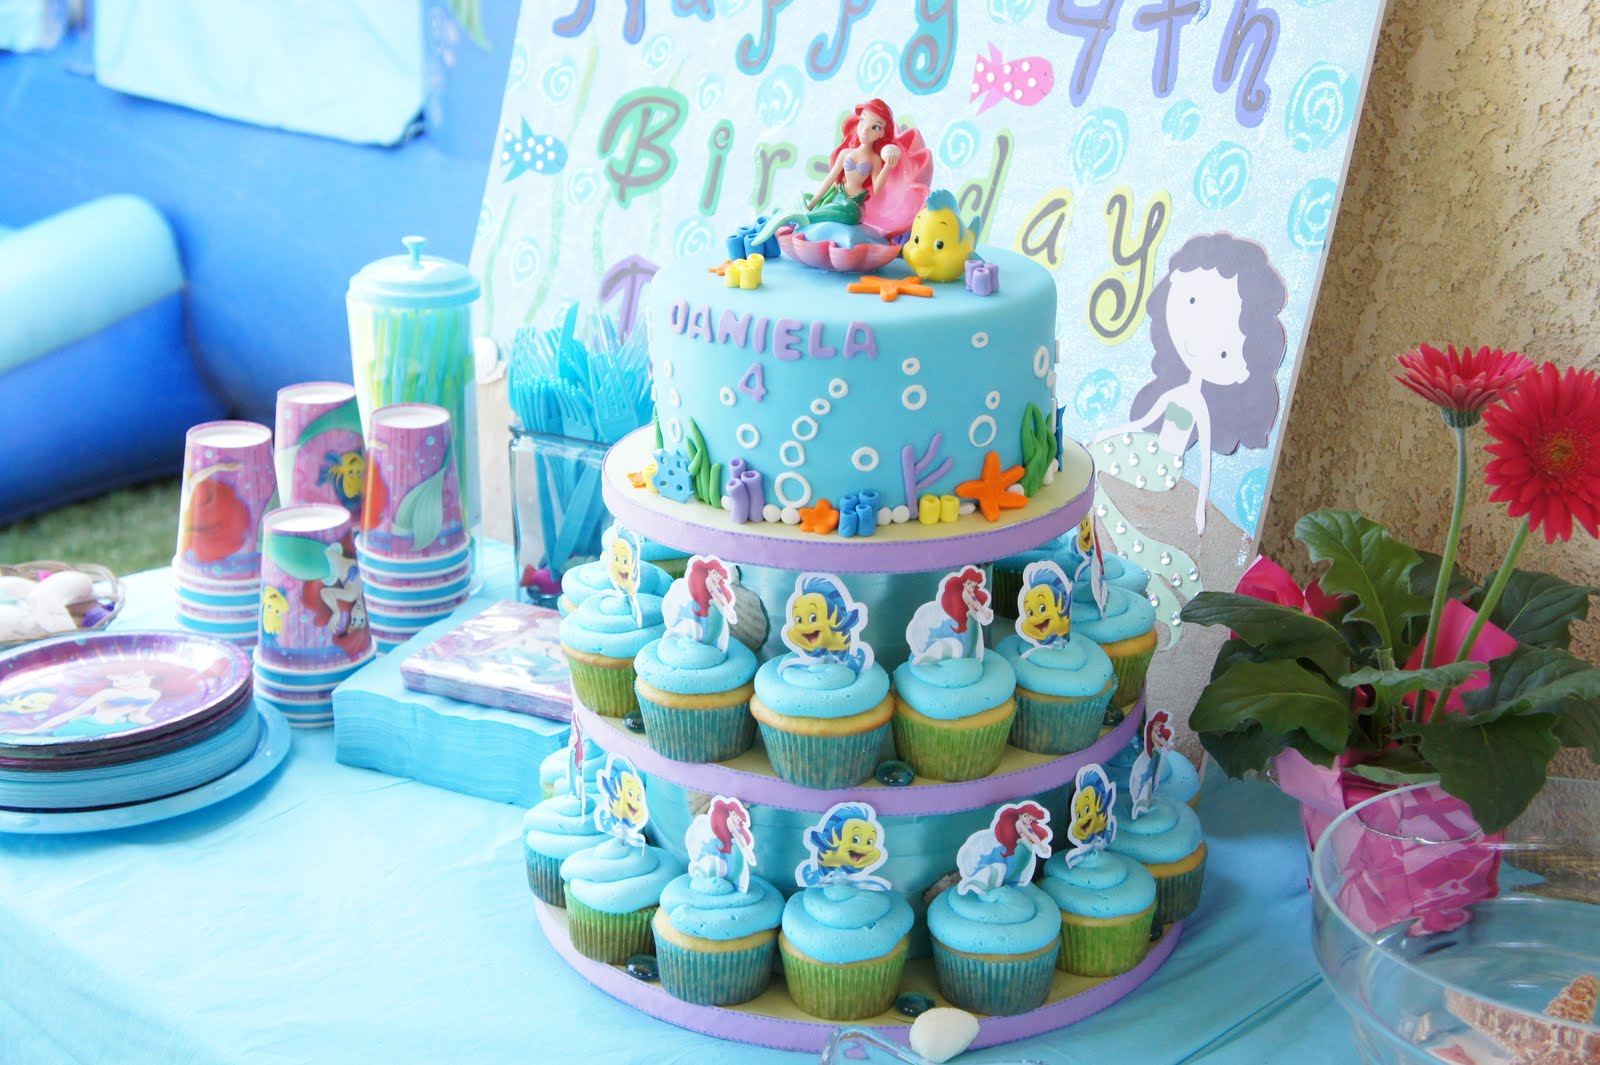 Karinas Kakes The Little Mermaid Cake